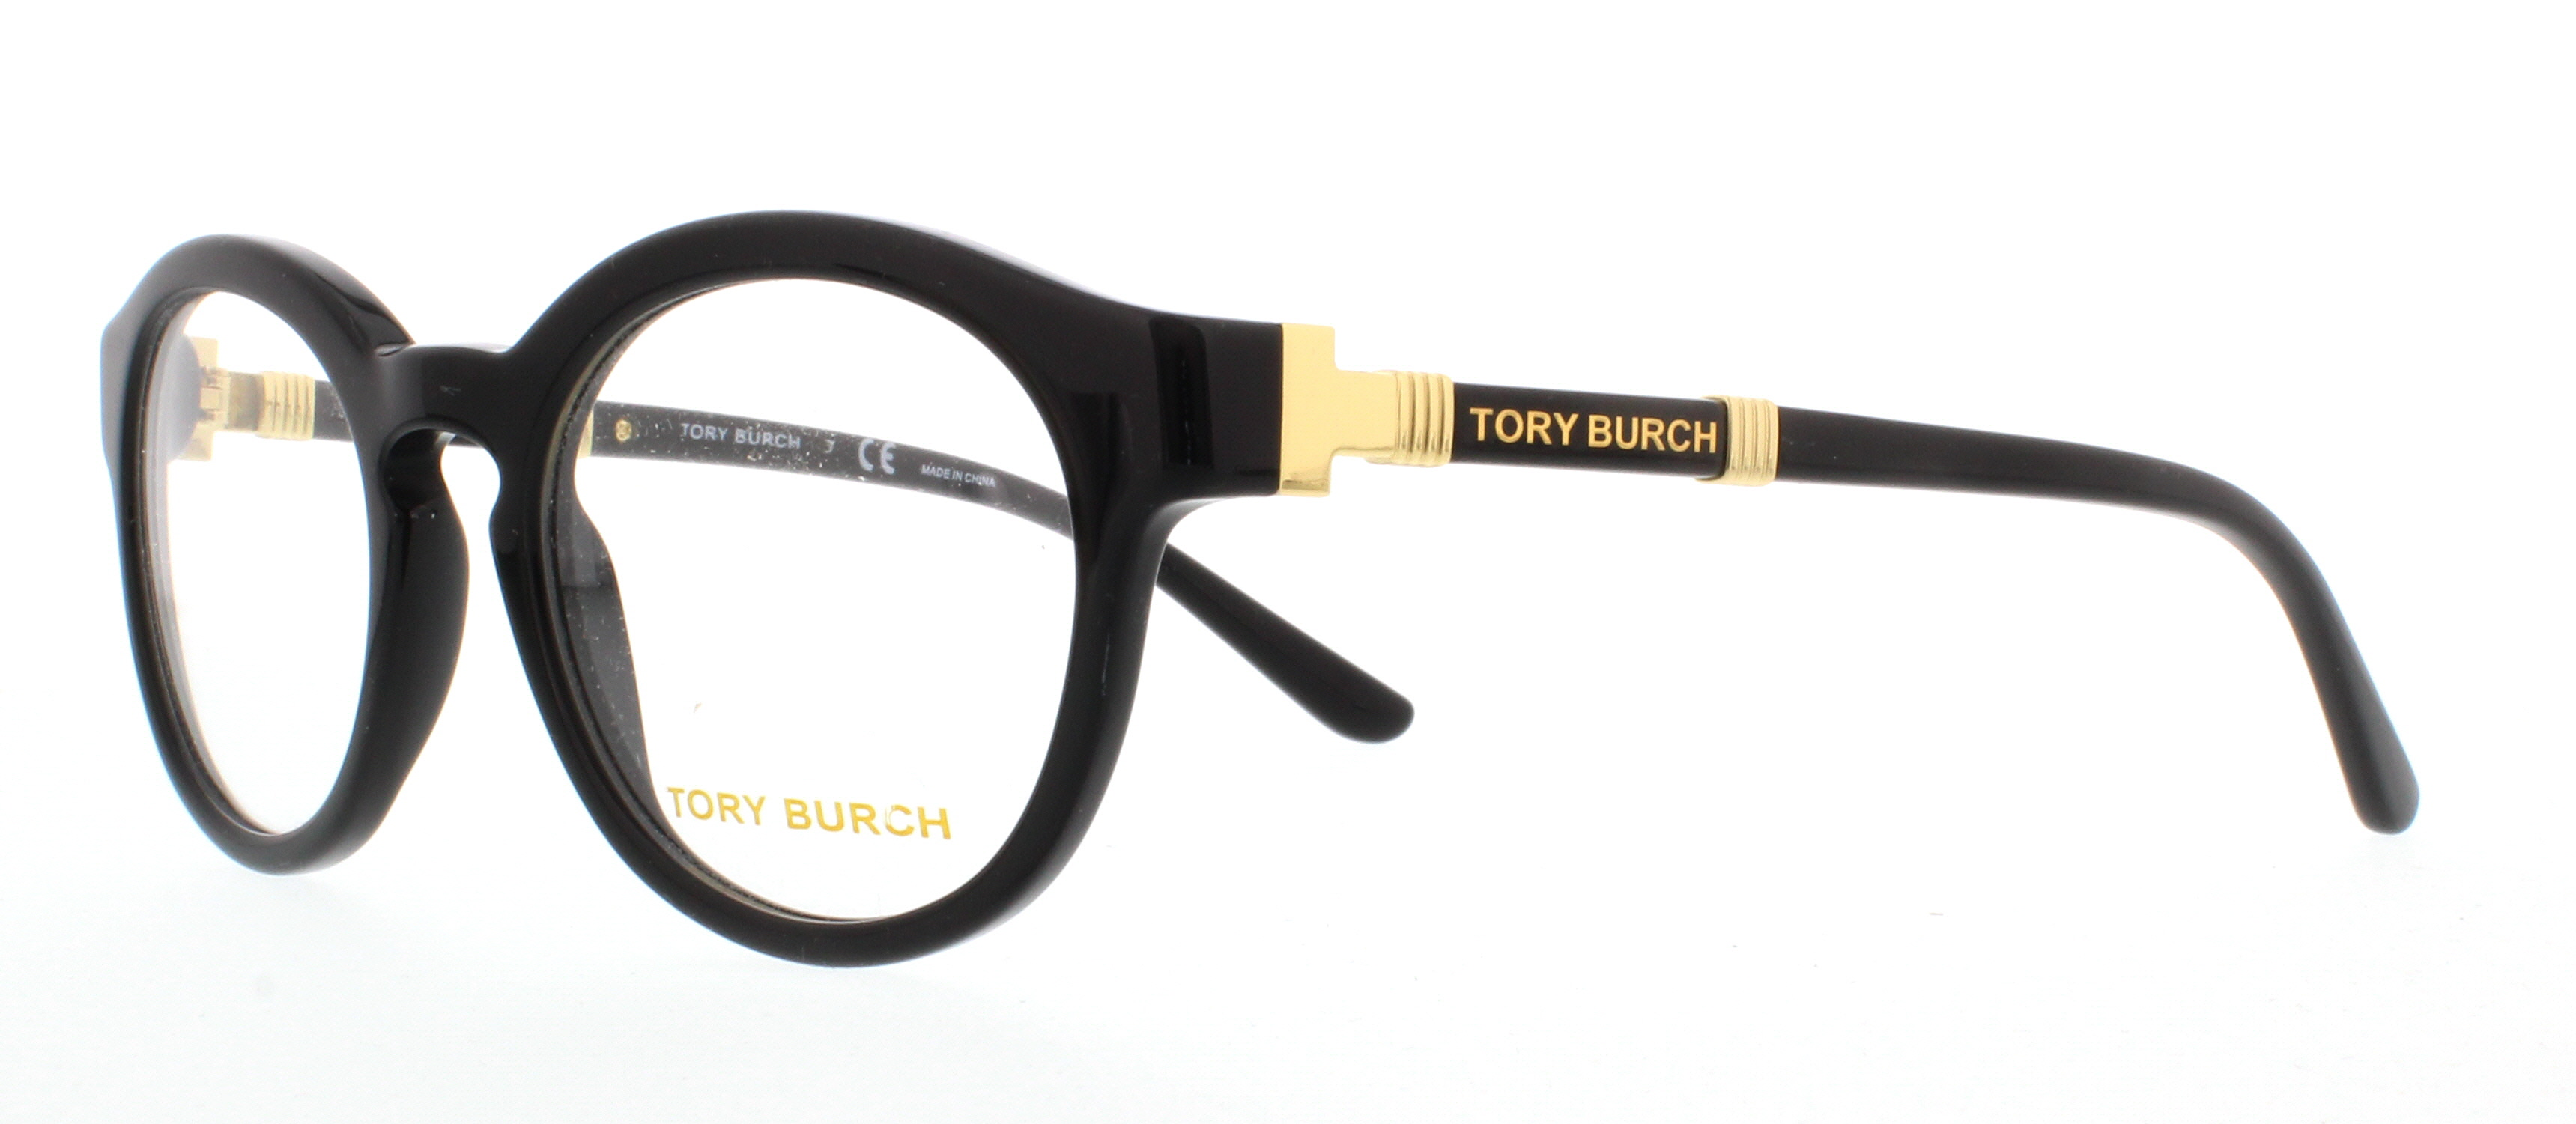 9c722068ef4 Tory Burch Eye Glasses – Picture Glasses and Image Gpr-Quad.Com